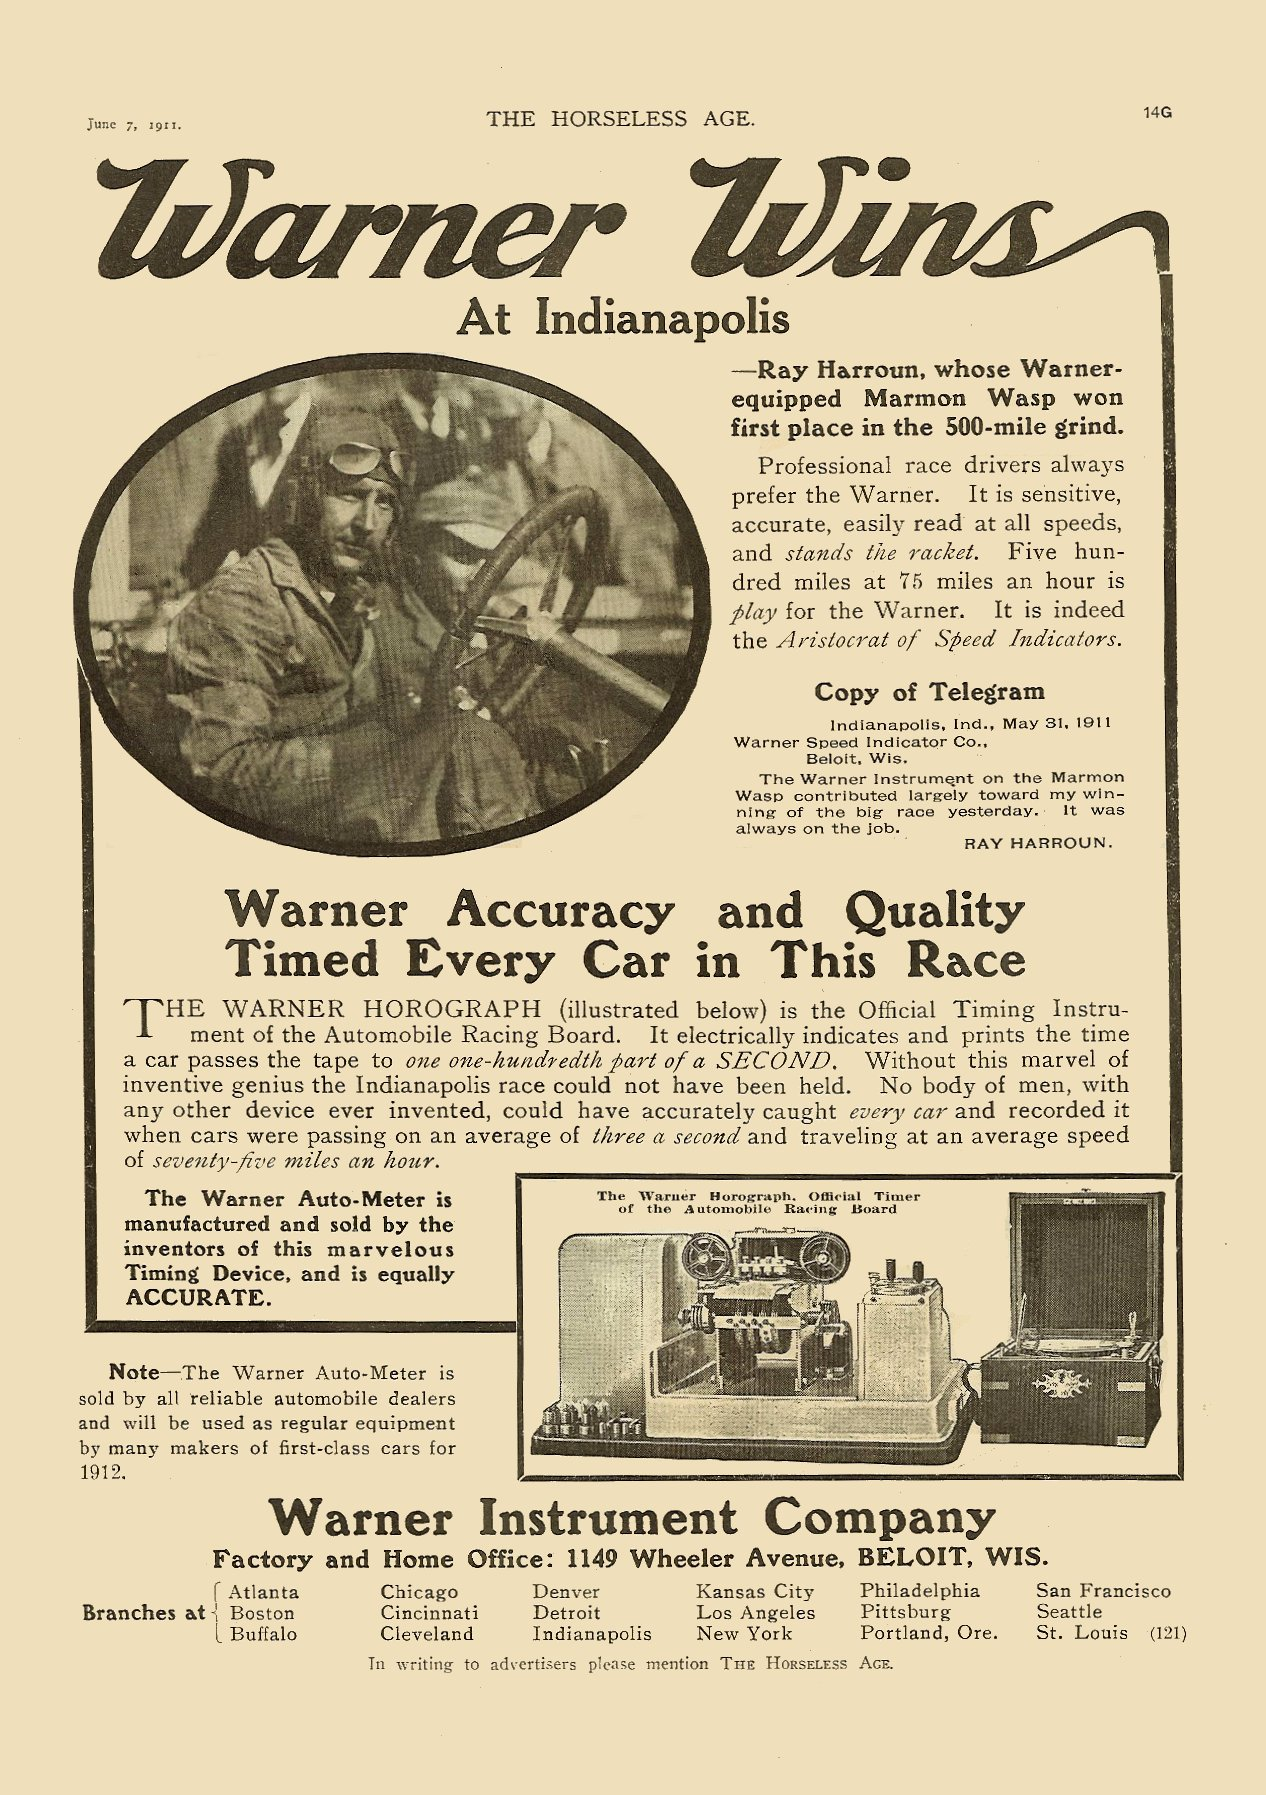 """1911 6 7 Warner Instrument Company Beloit, Wisconsin """"WARNER WINS At Indianapolis"""" THE HORSELESS AGE June 7, 1911 Vol. 27 No. 23 9″x12″ page 14G"""